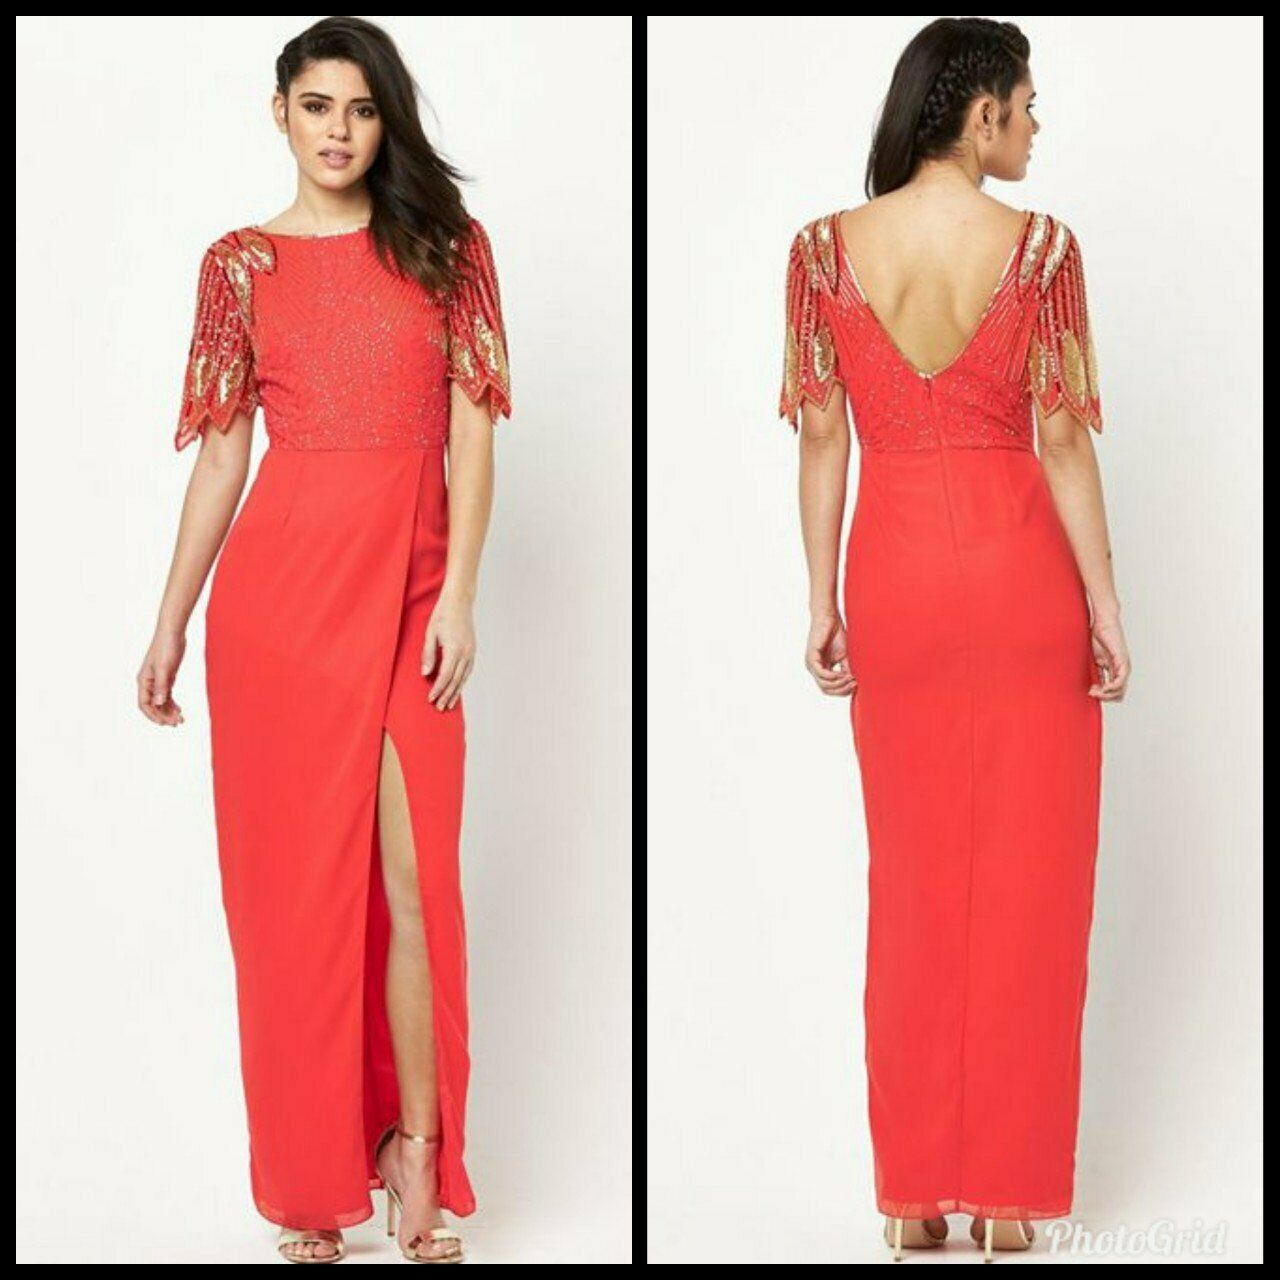 VIRGOS LOUNGE LENA MAXI DRESS SIZE UK8 EUR36 US4 RRP